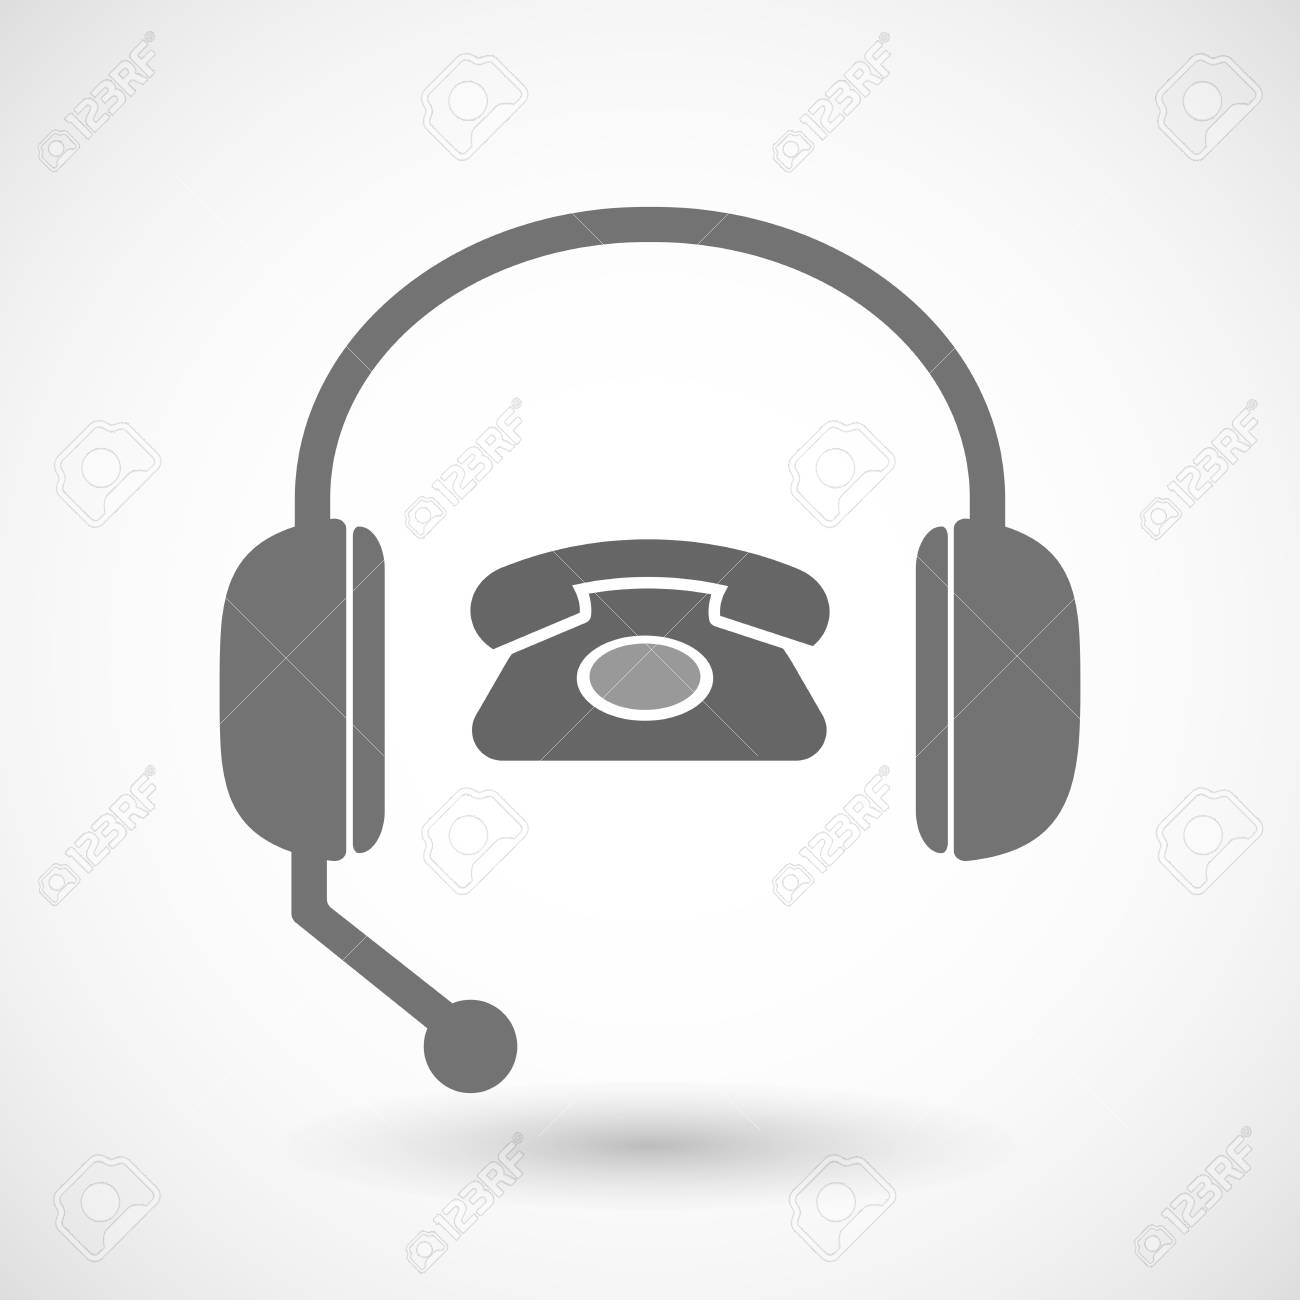 Illustration Of An Isolated Hands Free Headset Icon With A Retro Royalty Free Cliparts Vectors And Stock Illustration Image 62922706